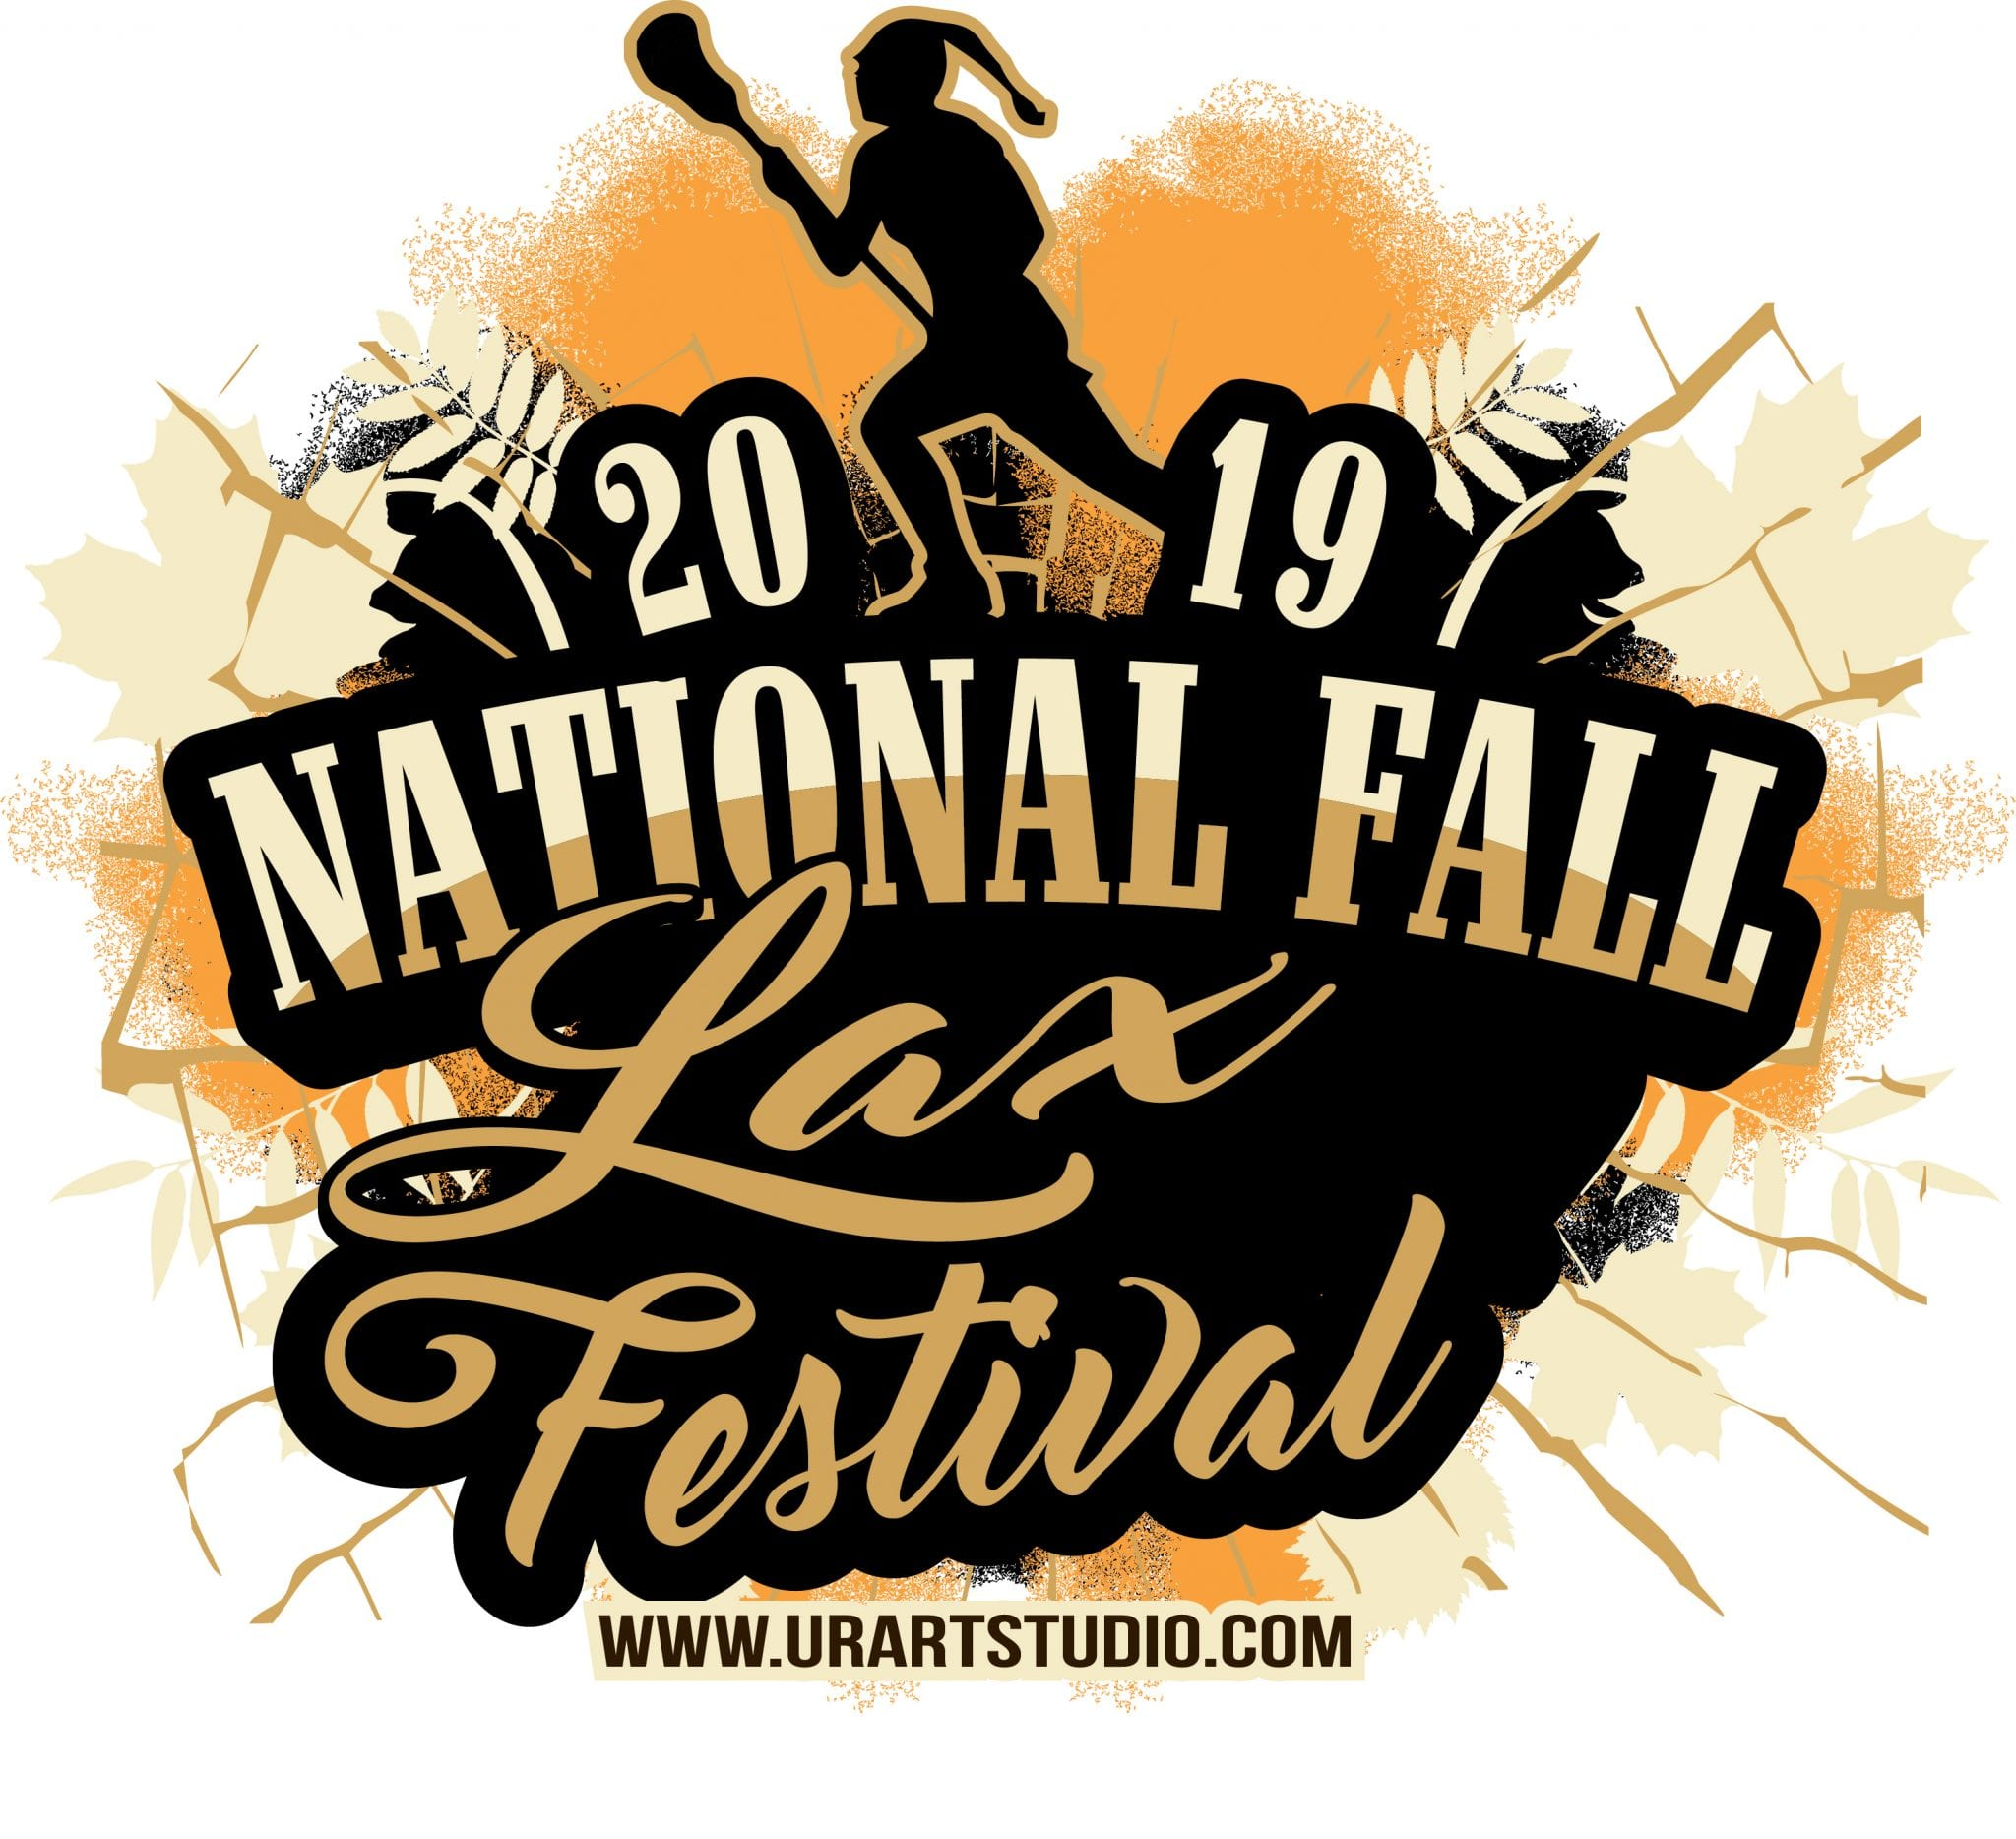 LAX FESTIVAL NATIONAL FALL Lacrosse customizable T-shirt vector logo design for print 2019